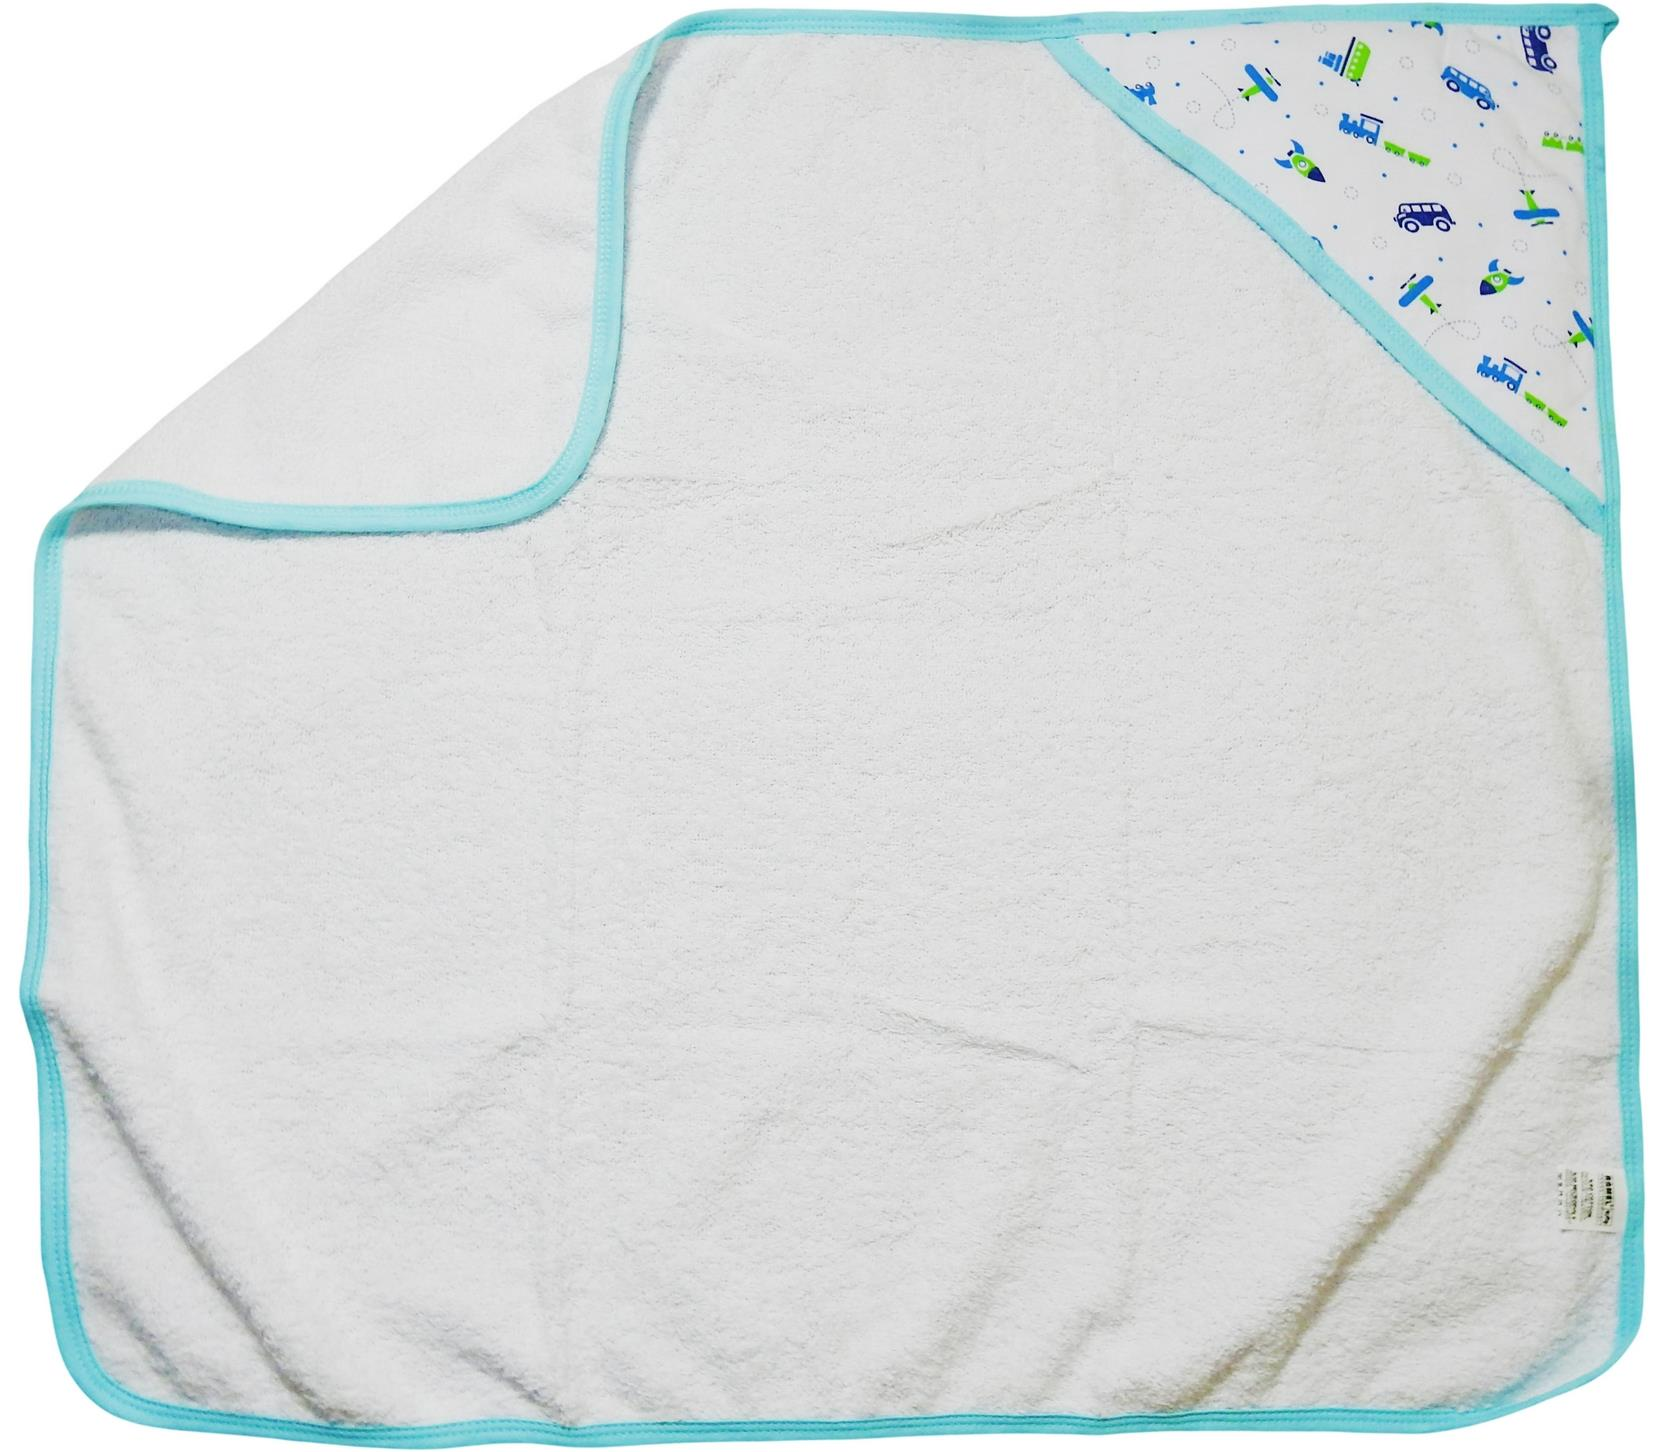 461 Wholesale embroidery towel for baby